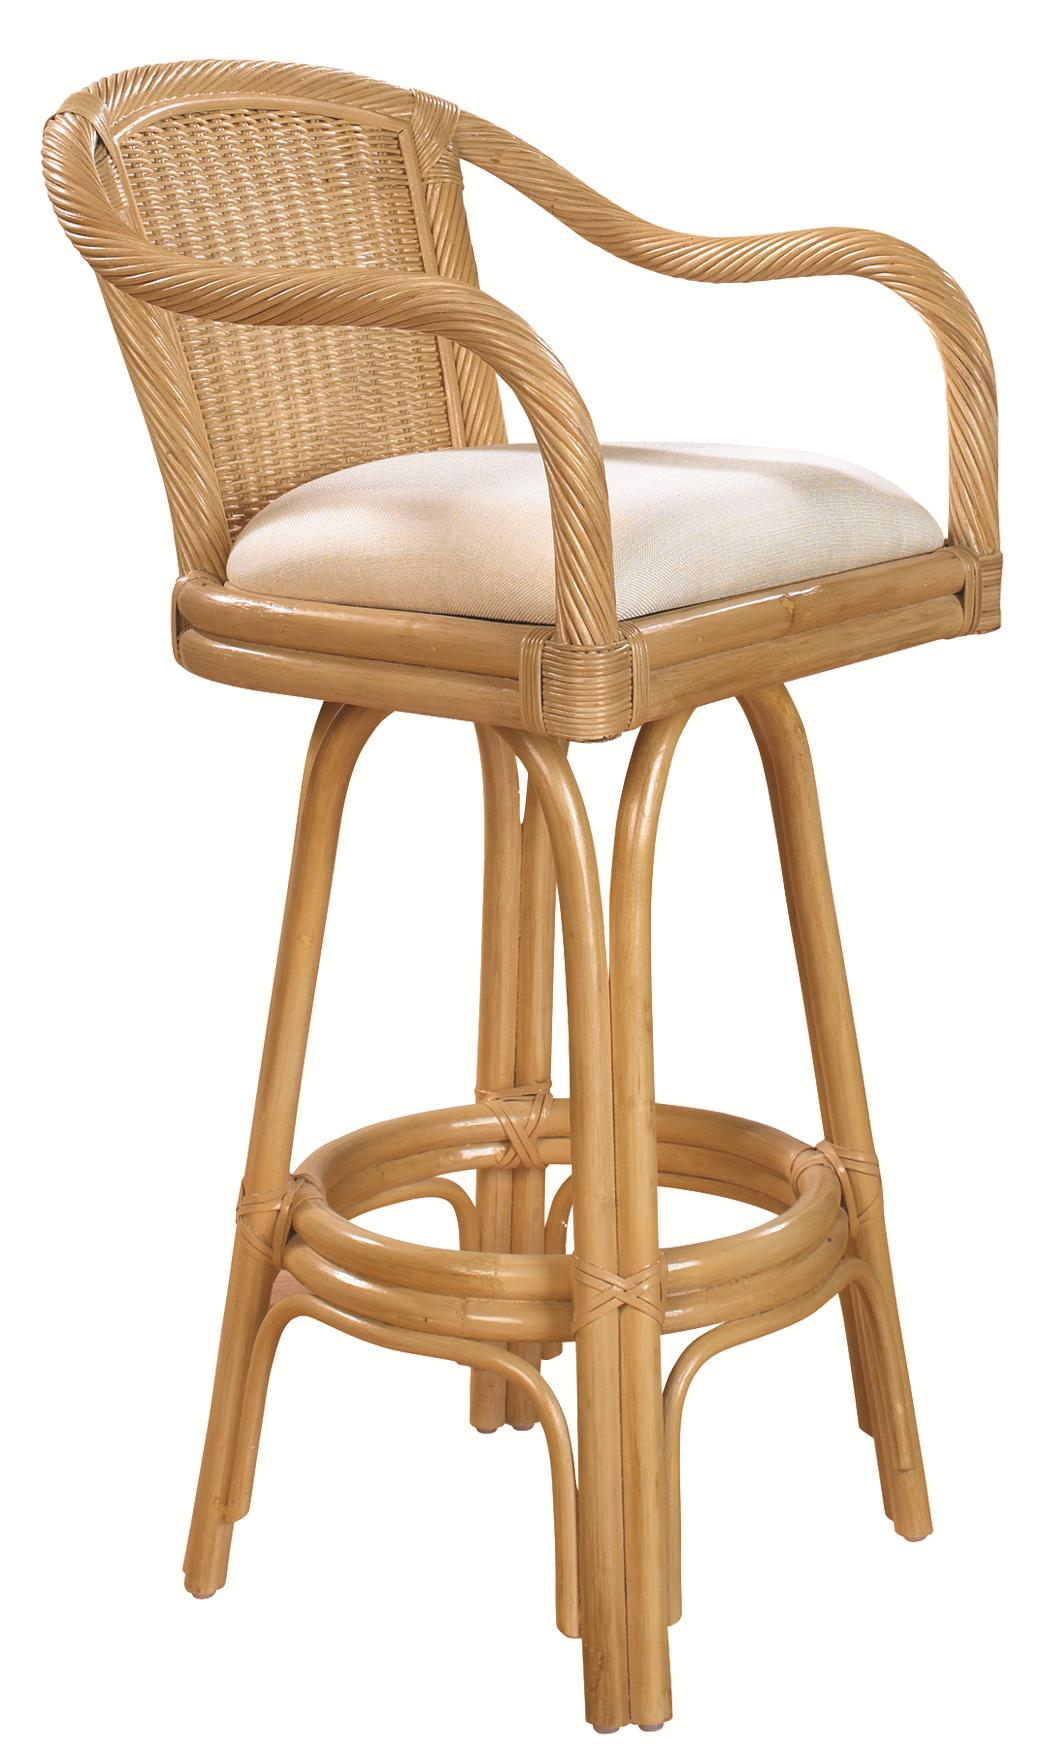 Pelican Reef Bar Stools Pr 24 Quot Counter Stool With